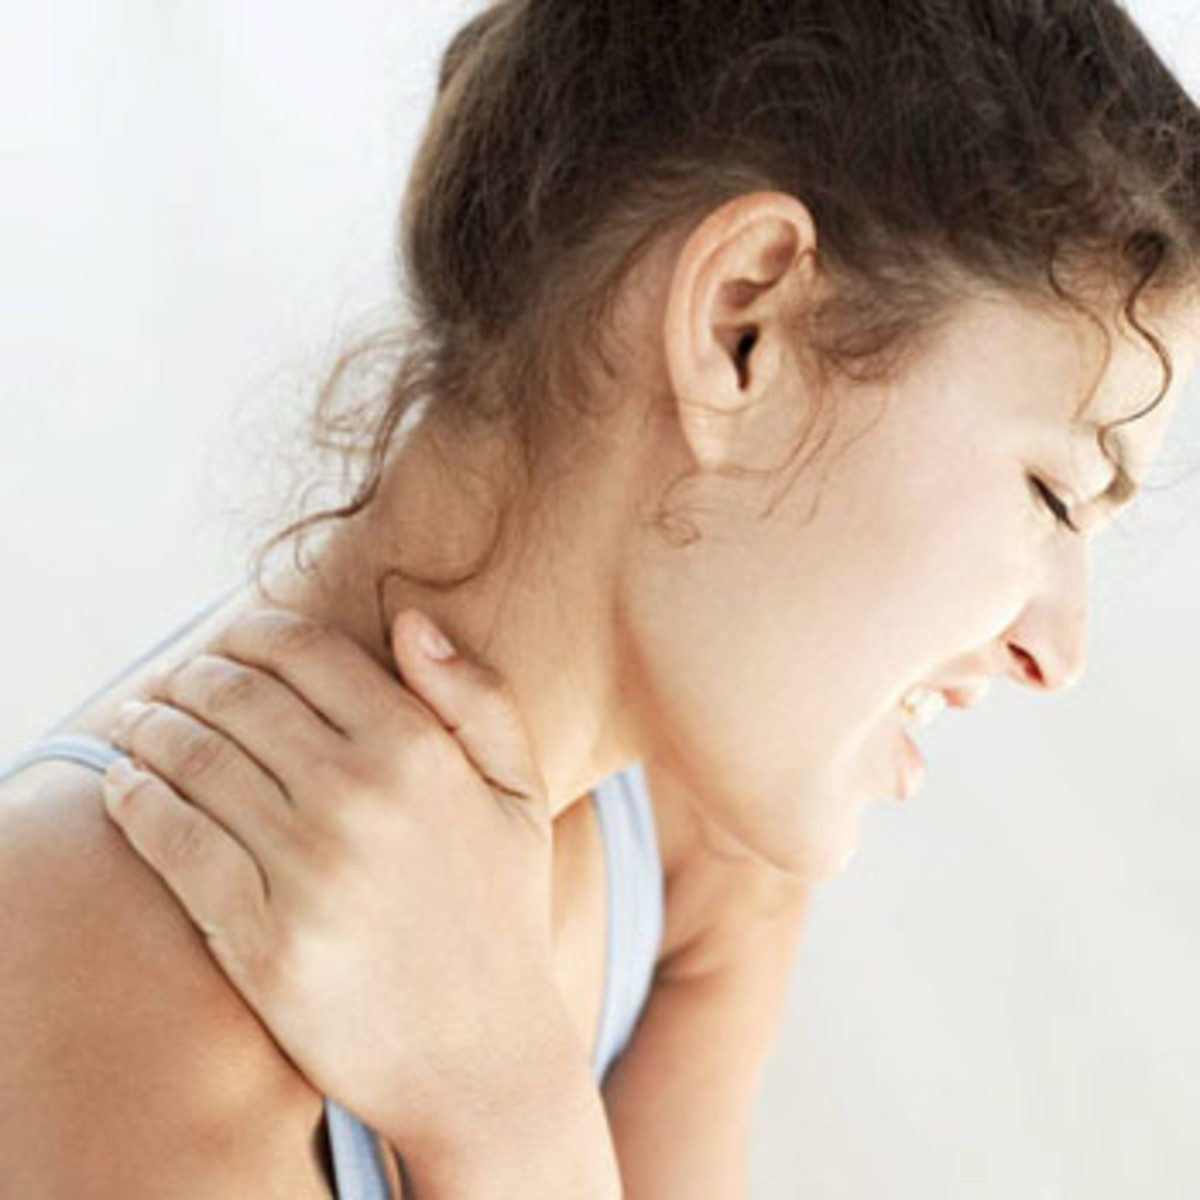 Back and Neck Pain are Very Common